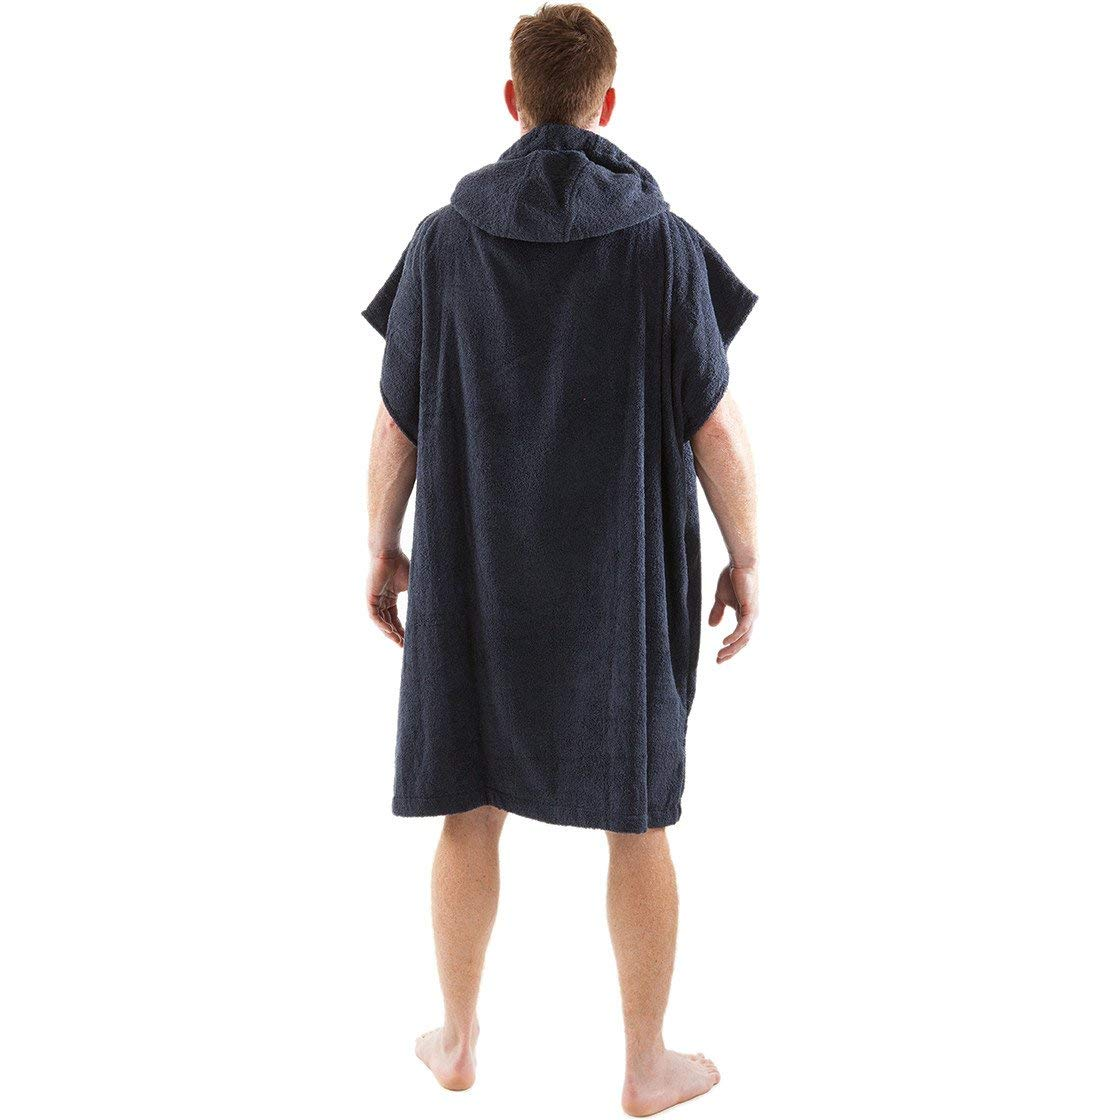 Amazon.com   Dryrobe Kids Beach Towel Changing Robe - Short Sleeve Towelling  Change Poncho Dry Robe One Size (Black)   Sports   Outdoors bcb191891